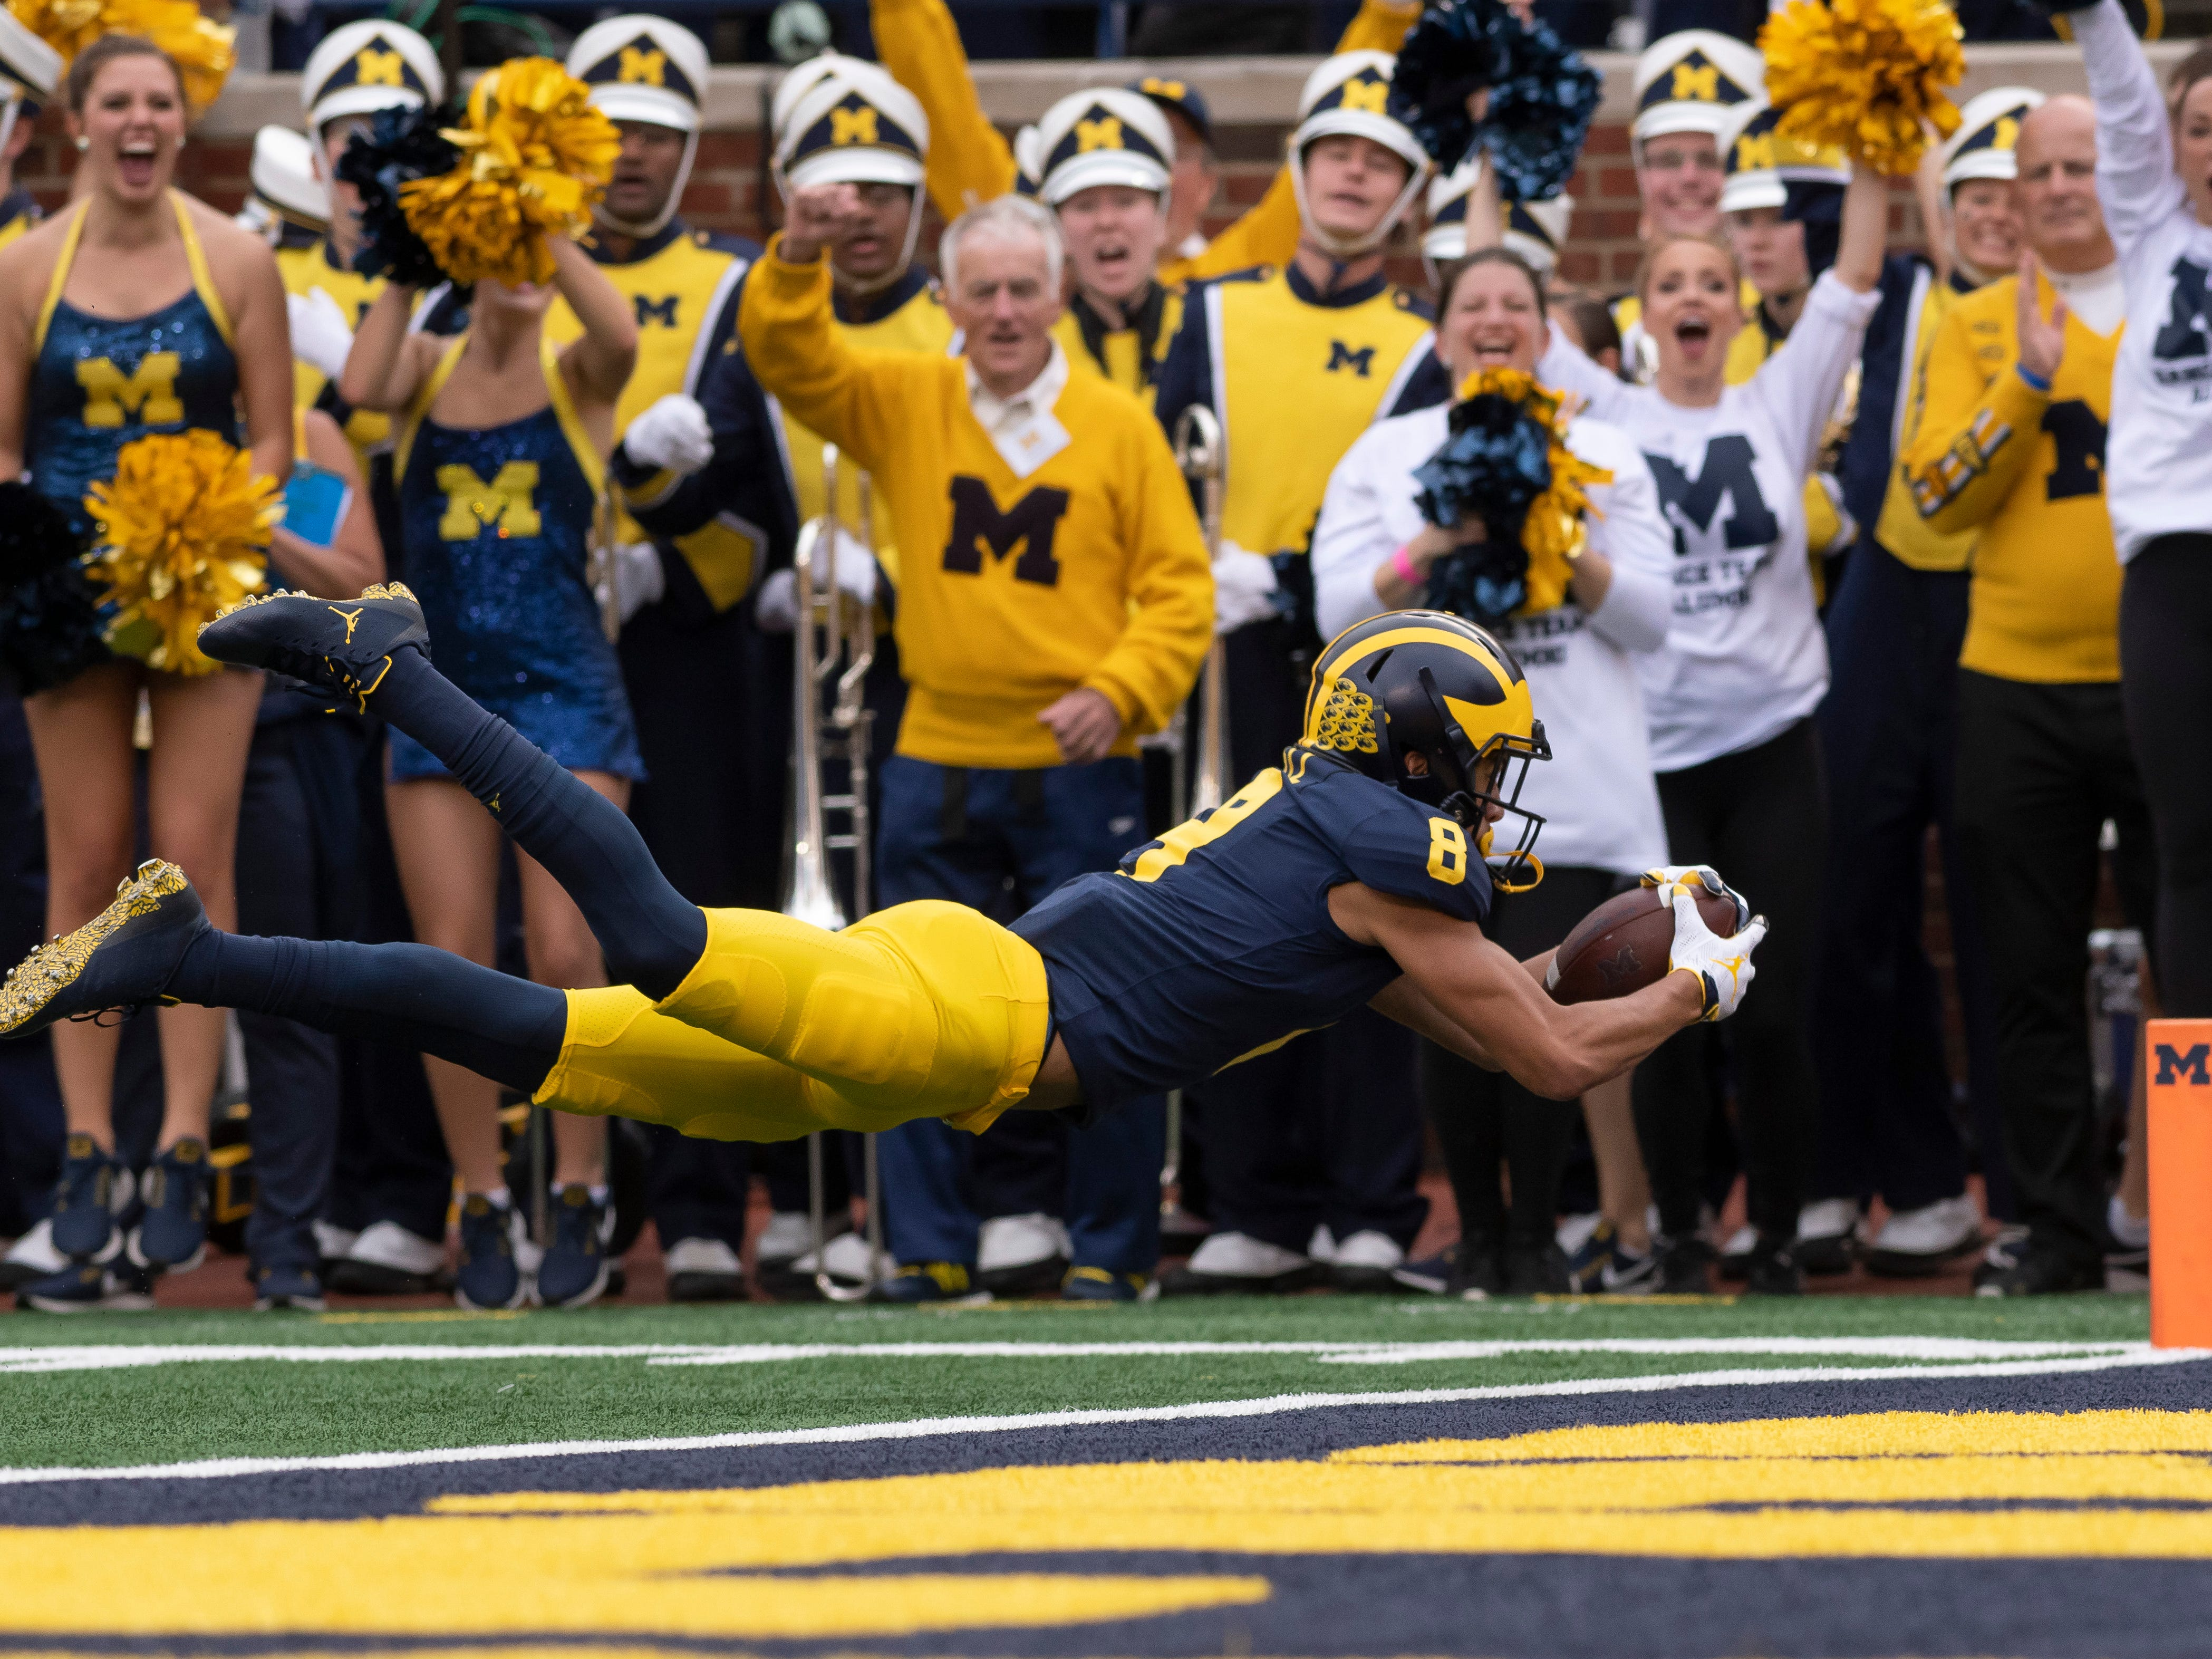 Michigan wide receiver Ronnie Bell dives into the end zone for a touchdown against Maryland to the delight of the homecoming crowd at Michigan Stadium, in Ann Arbor, October 6, 2018. Michigan won the game 42-21.